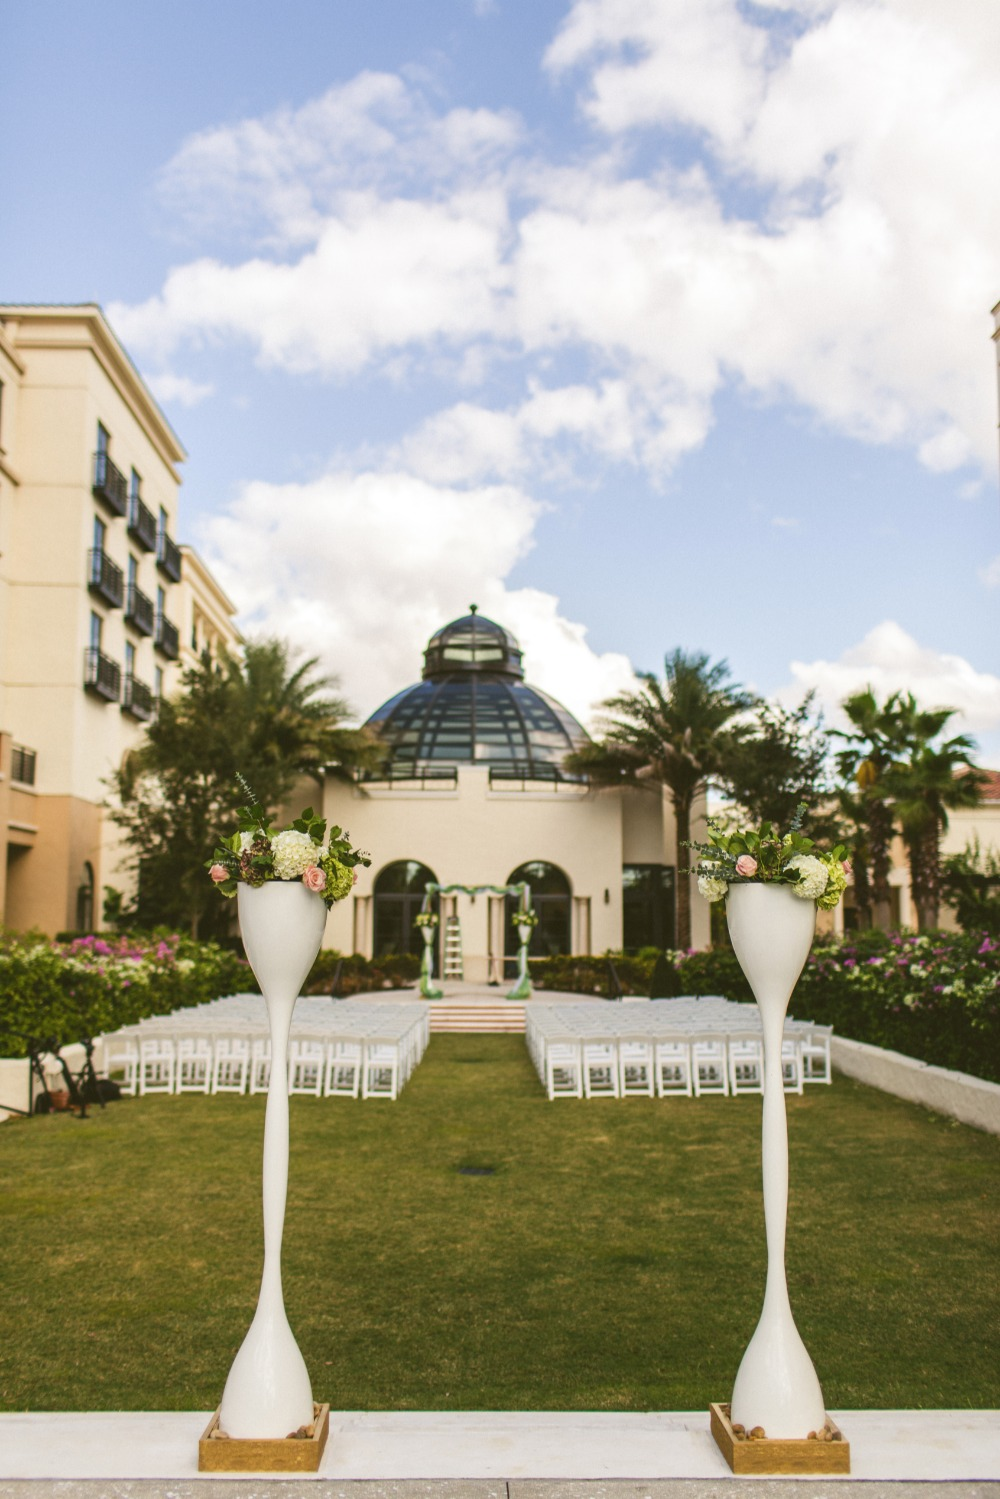 Outdoor wedding ceremony space